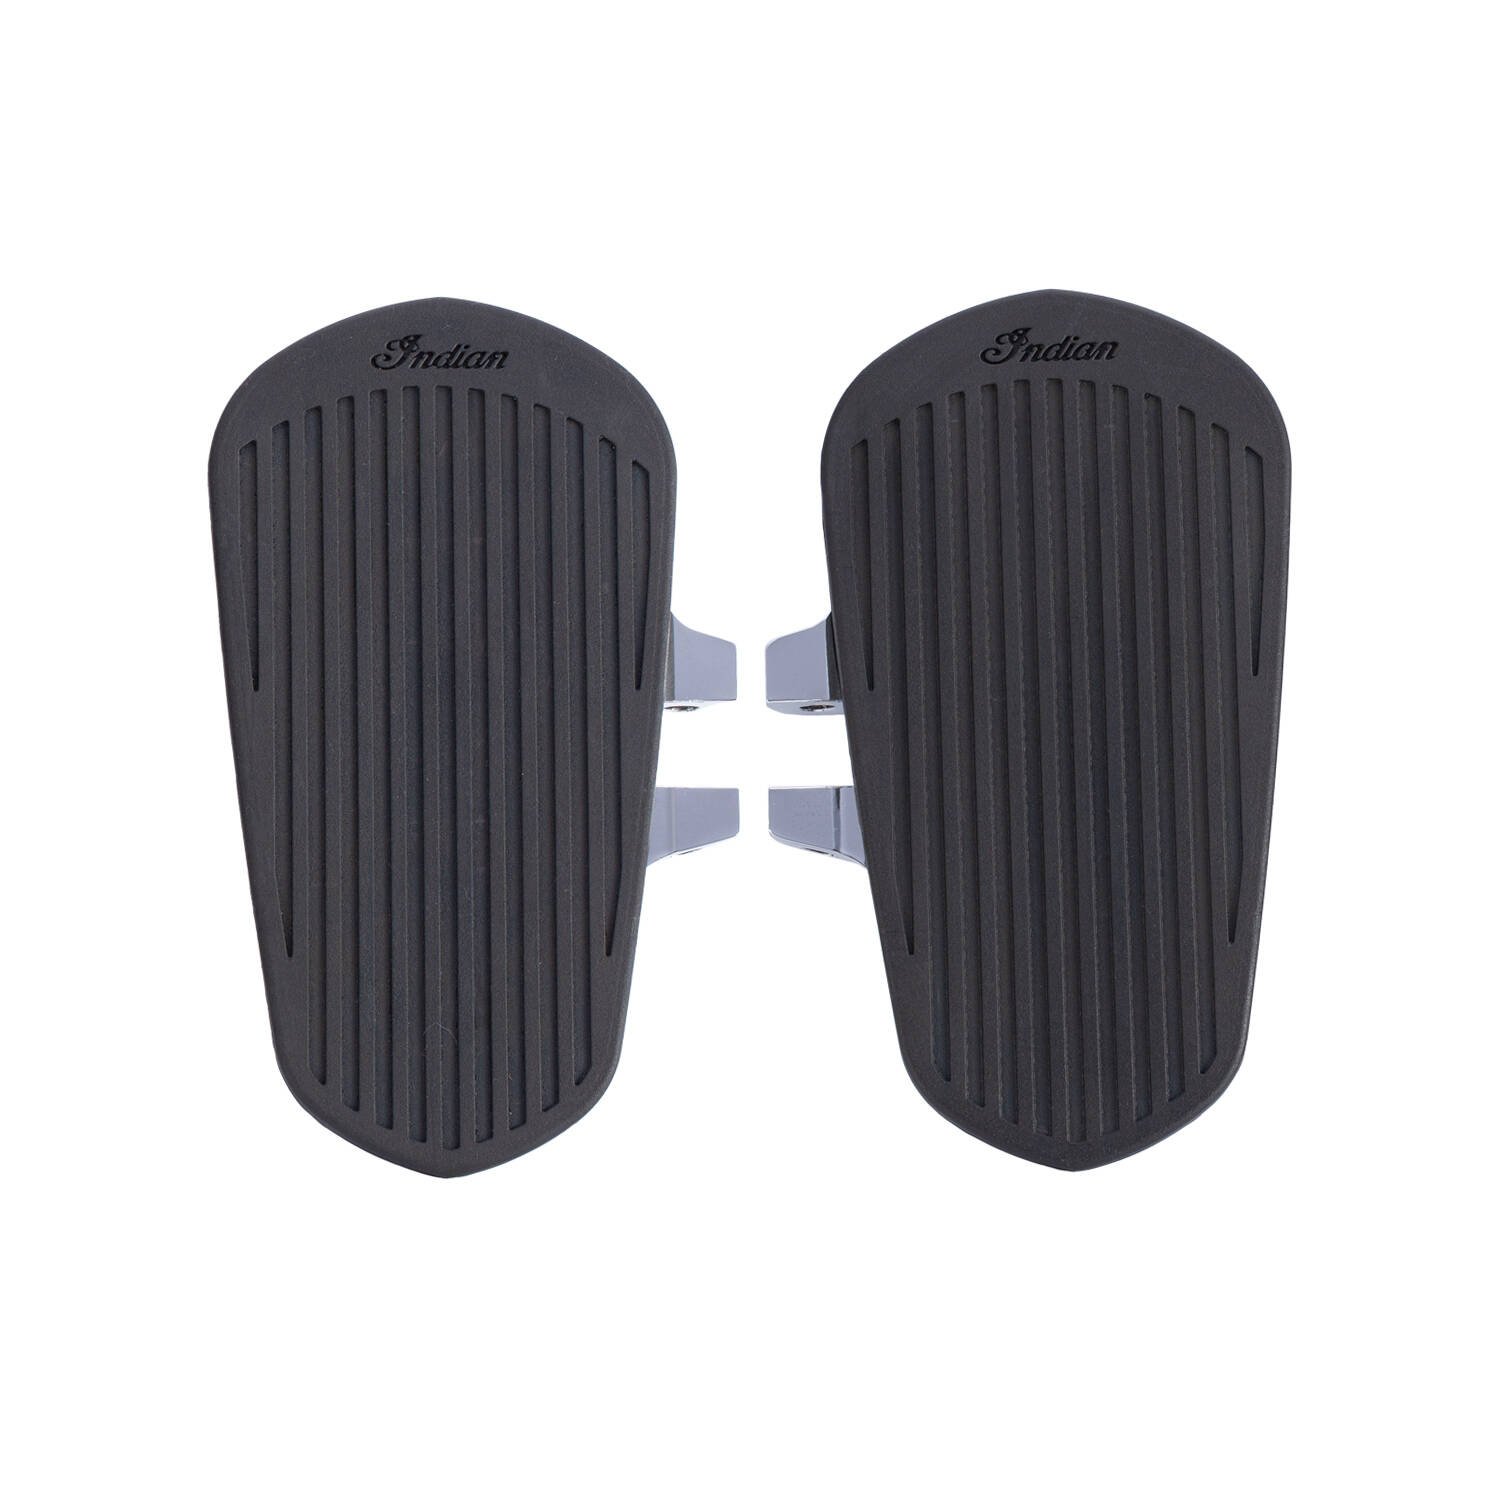 Passenger Floorboards with Pads in Chrome, Pair